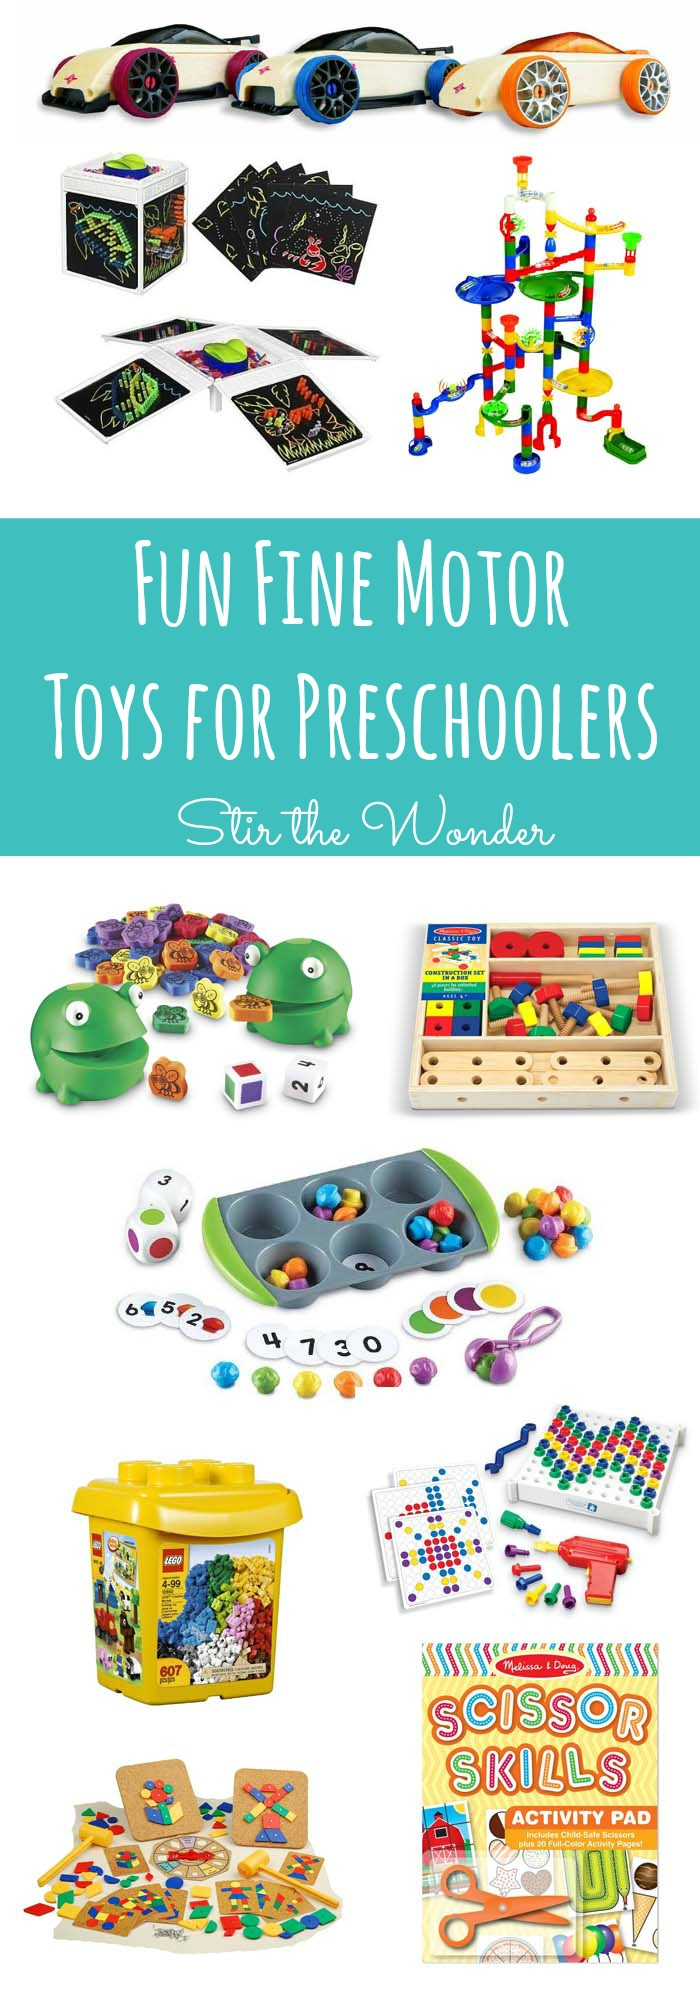 Toys For Preschoolers : Fun fine motor toys for preschoolers stir the wonder